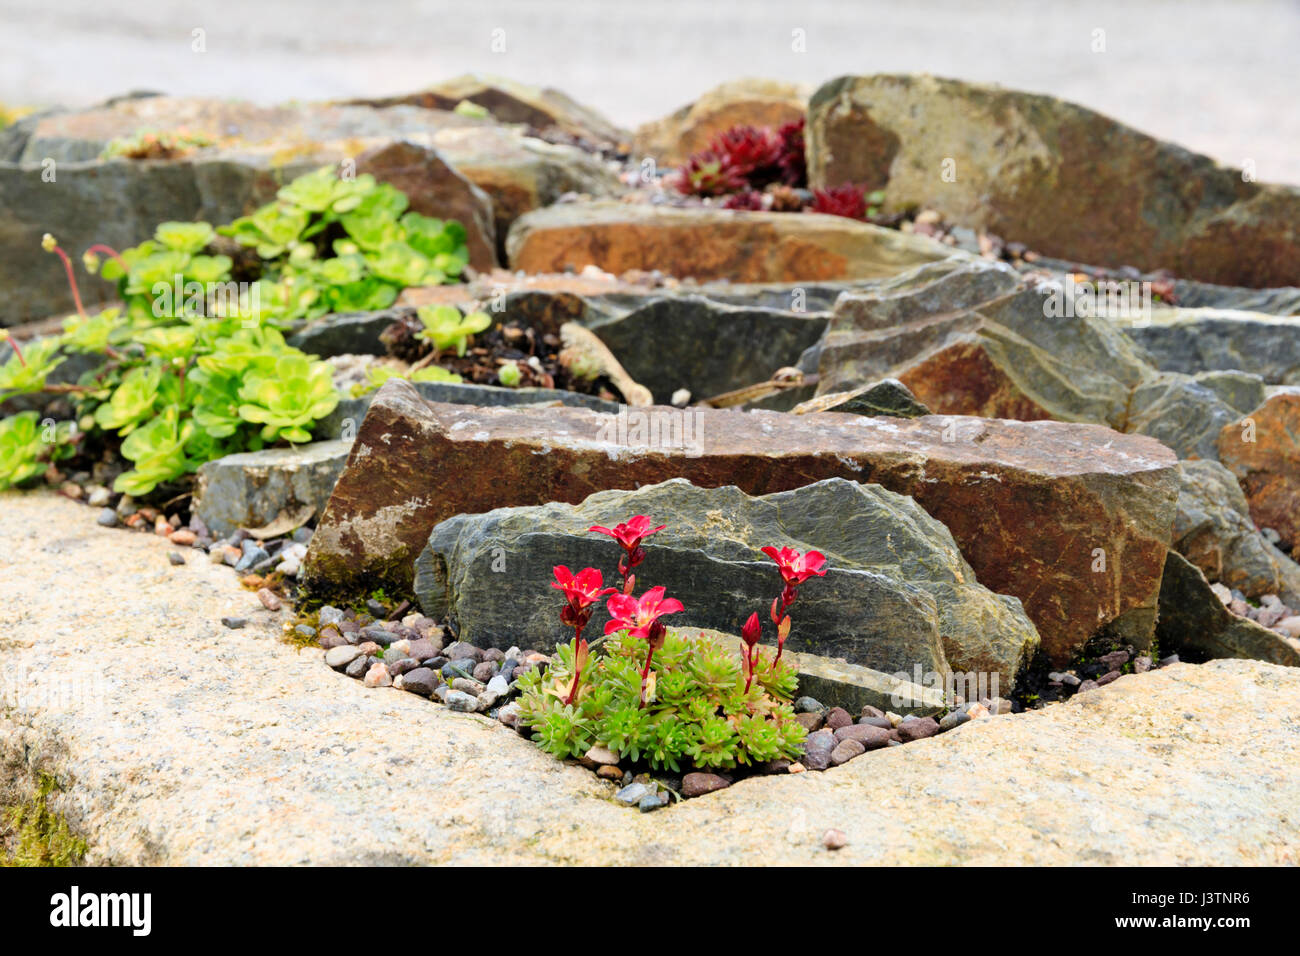 Close up, low angle view over an alpine trough with a red flowered saxifrage in the foreground - Stock Image